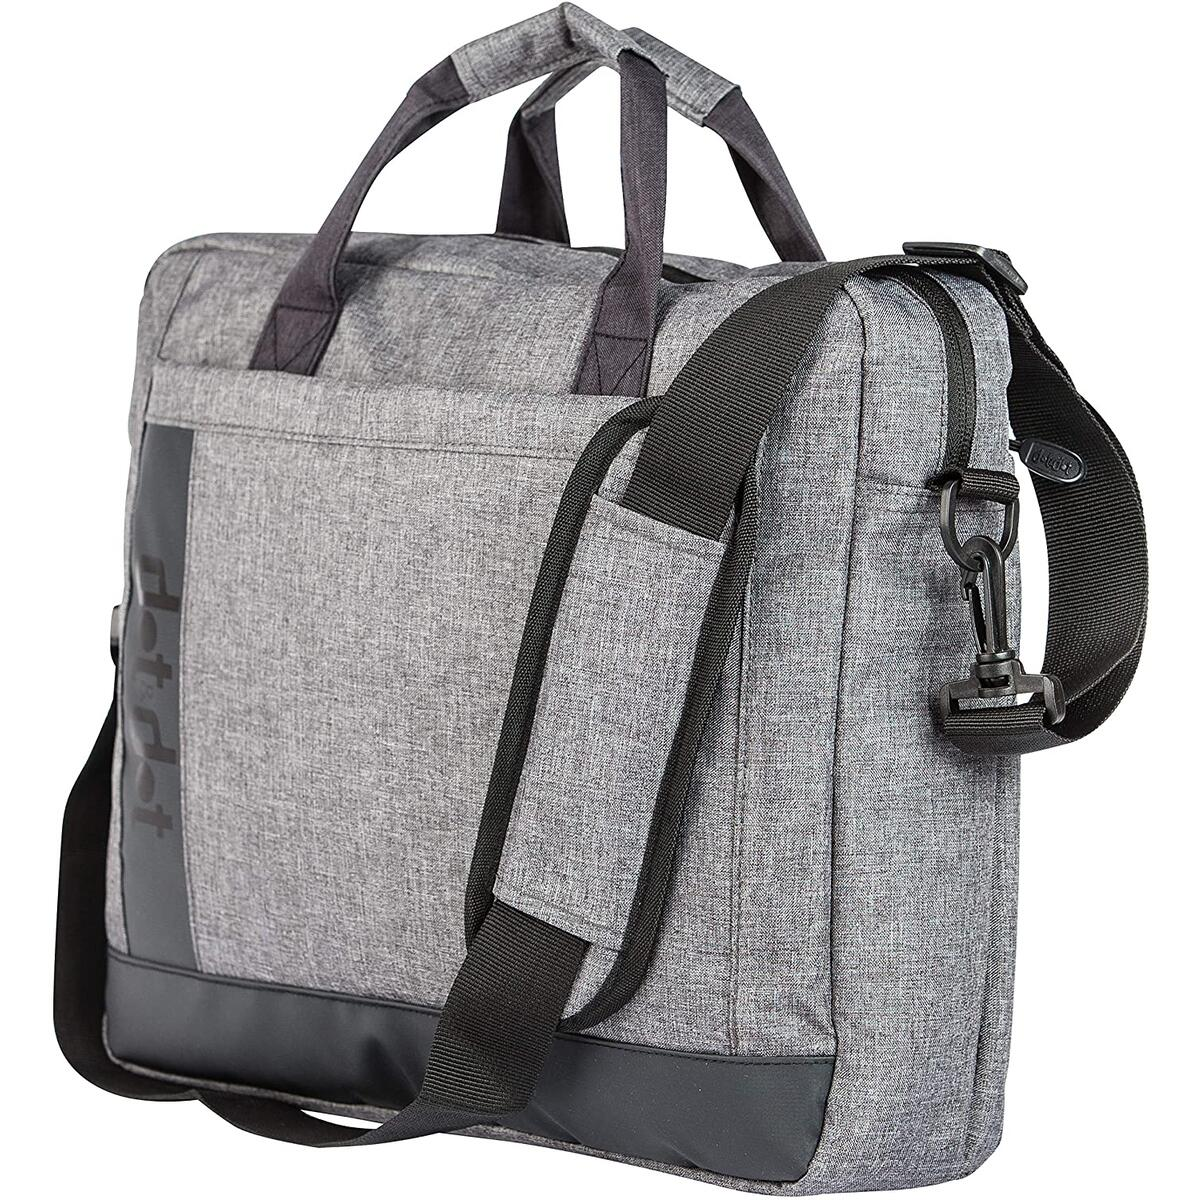 Travel Laptop Bag Briefcase: Top of The Line Quality Messenger Sleeve Case for Your Tablet, Notebook, MacBook, iPad (Gray)